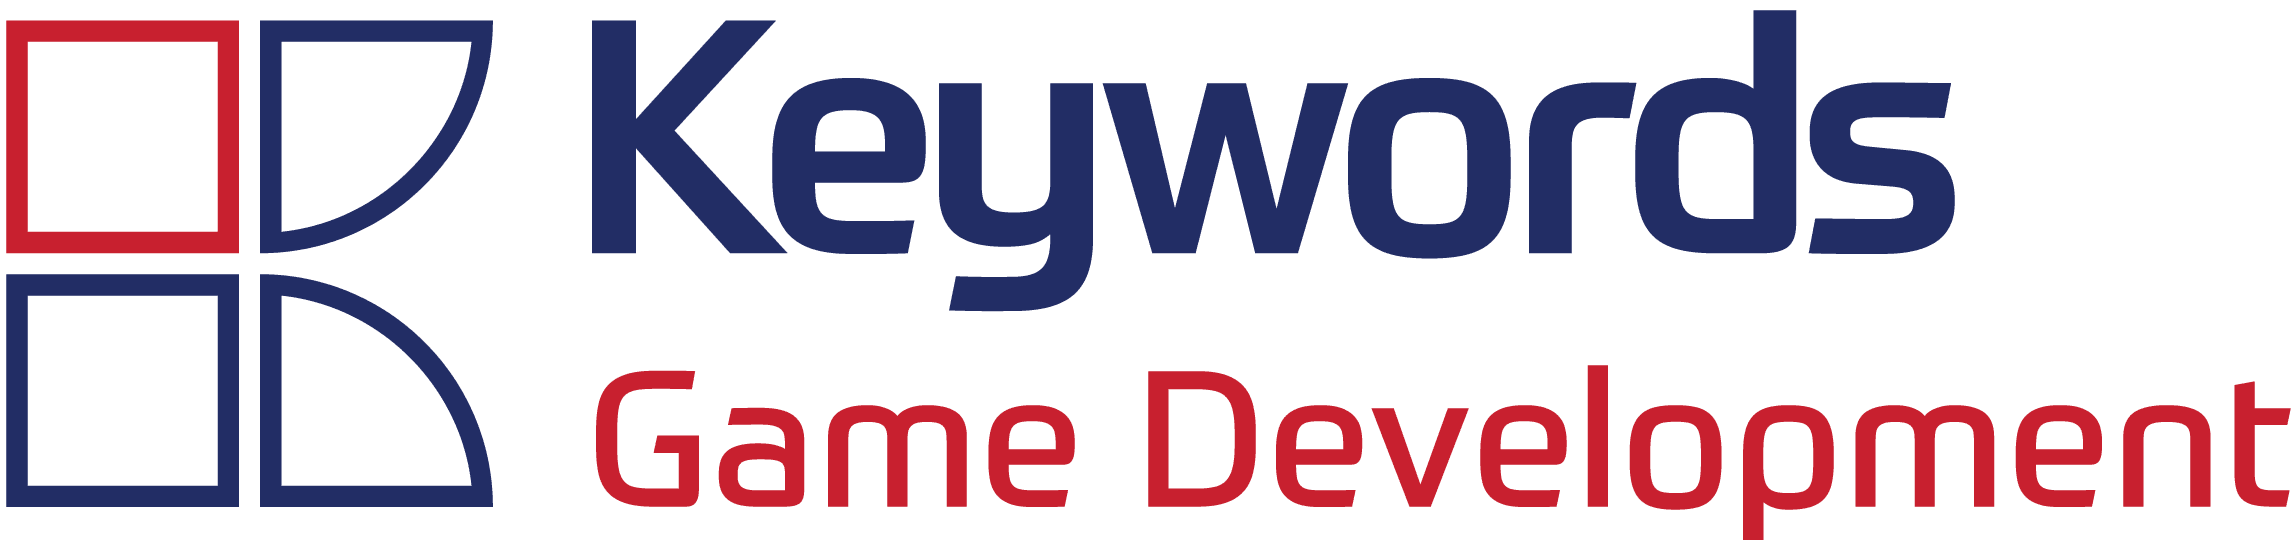 Keywords Game Development logo